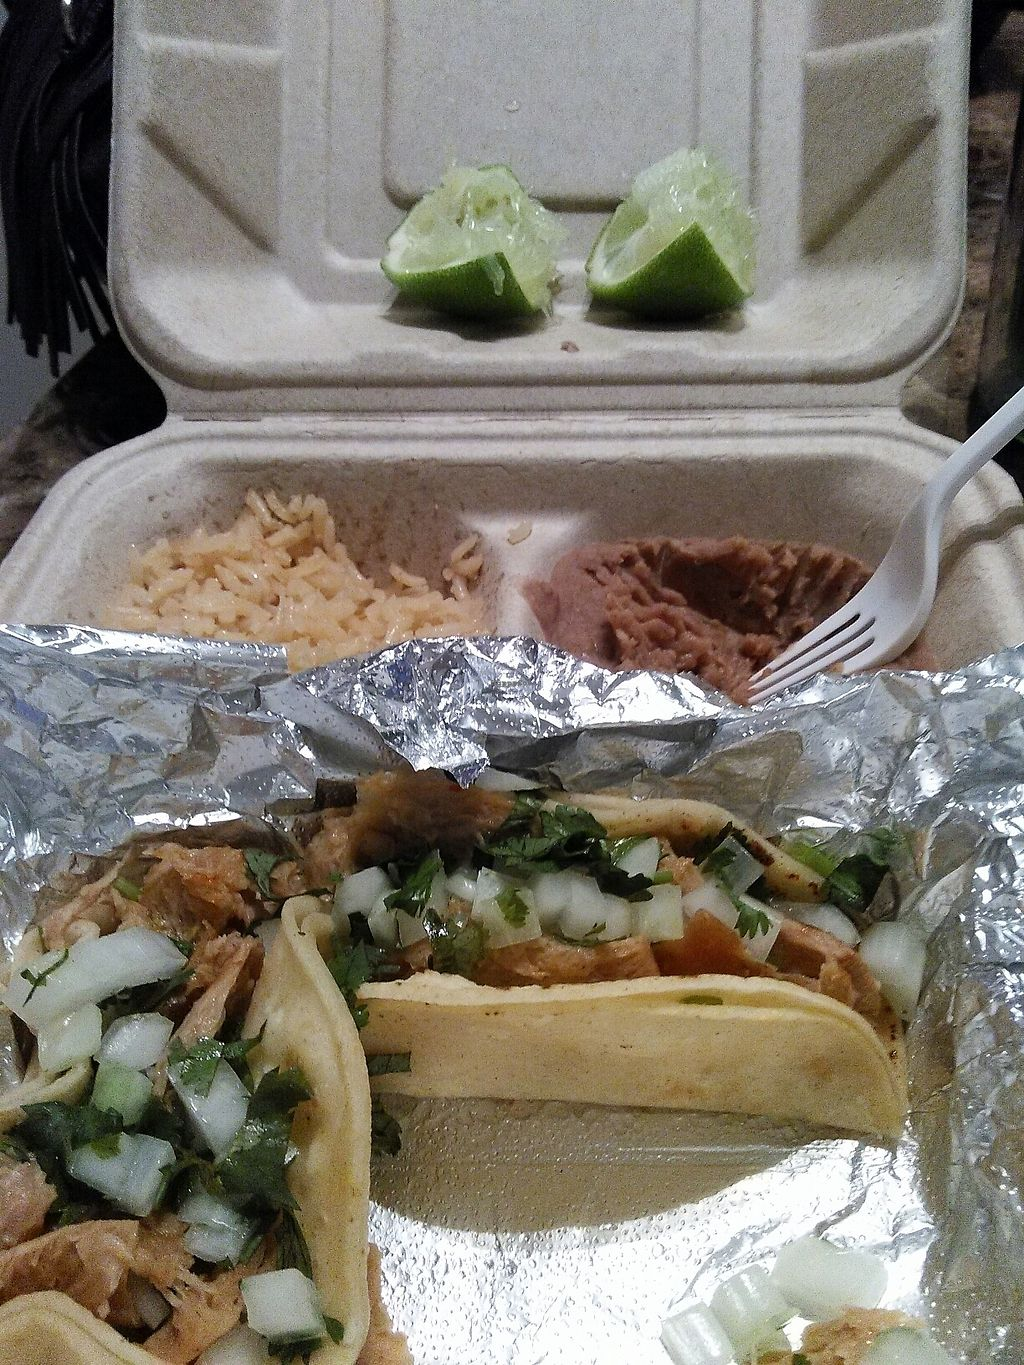 "Photo of El Palote Panaderia  by <a href=""/members/profile/lisapizza"">lisapizza</a> <br/>carnitas tacos with rice and beans <br/> July 22, 2017  - <a href='/contact/abuse/image/78138/283376'>Report</a>"